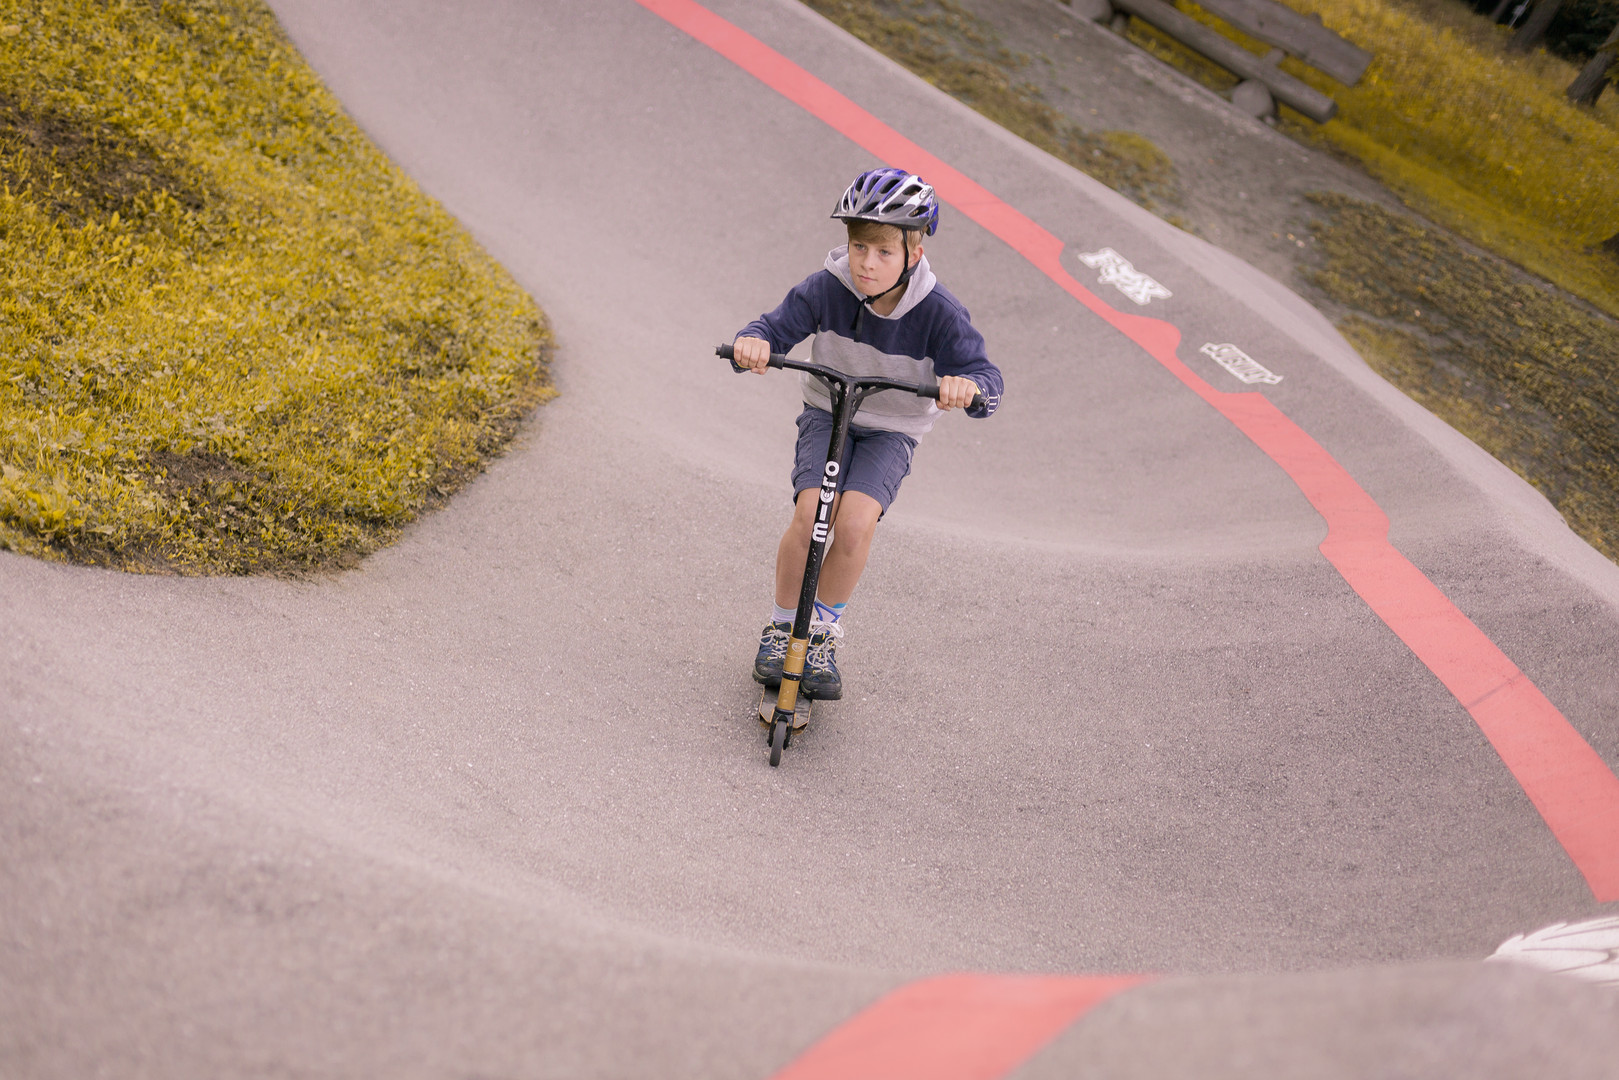 Pumptrack120920-003.jpg